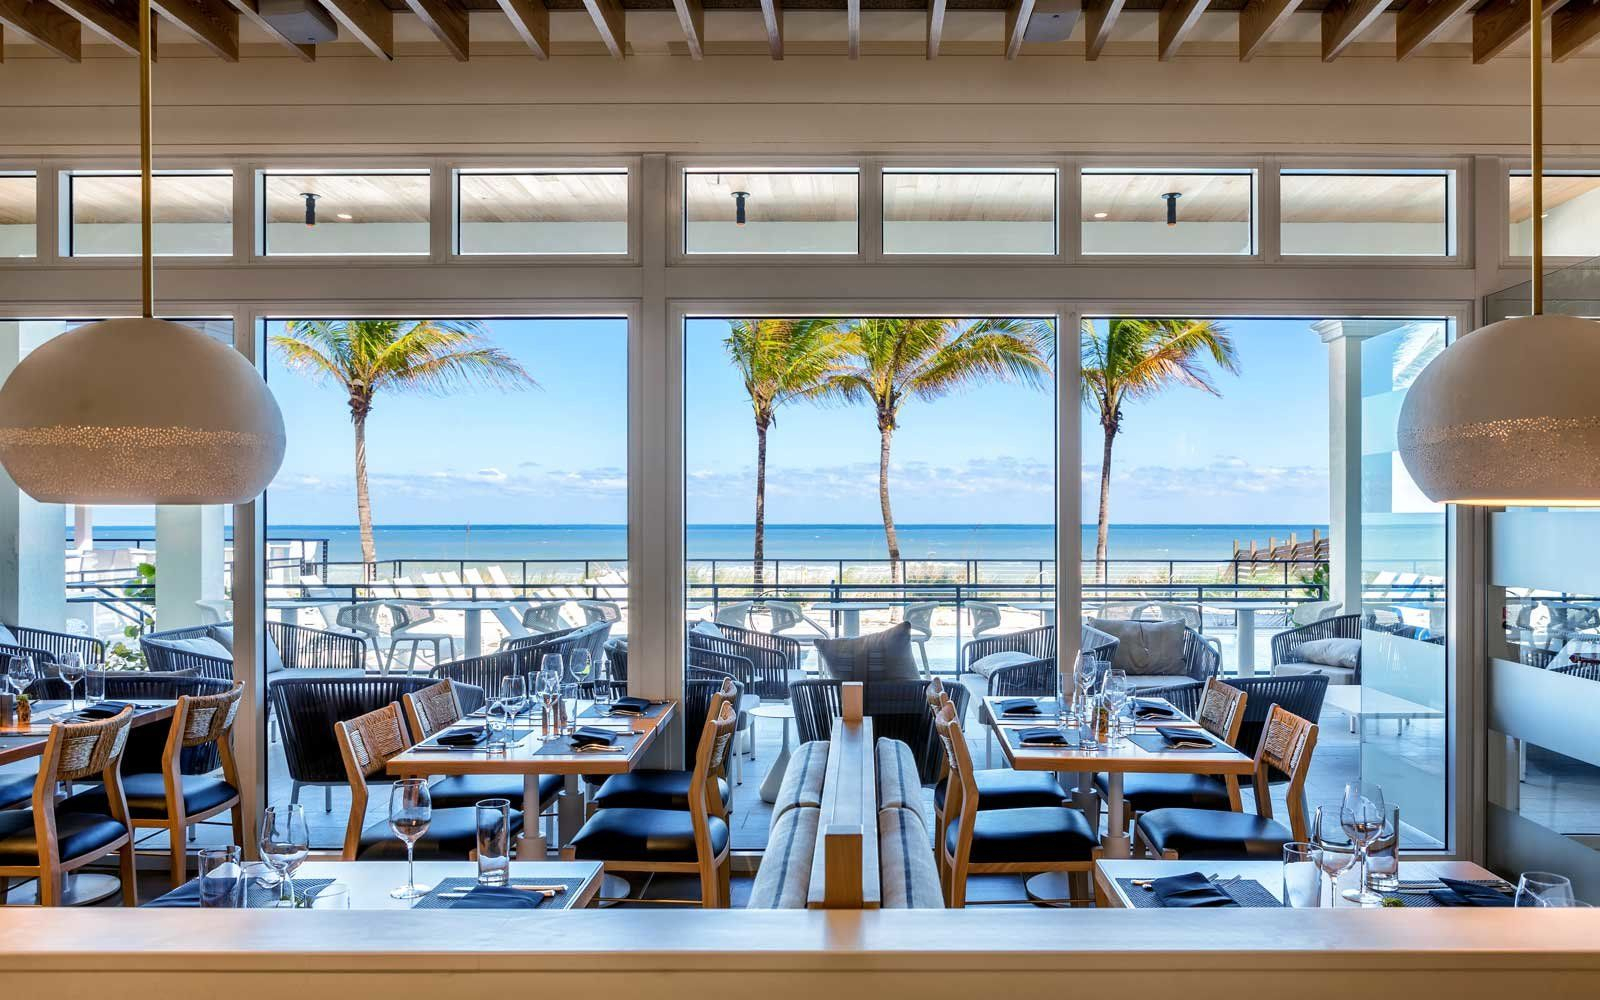 These Florida Bars And Restaurants Give You The Best Views